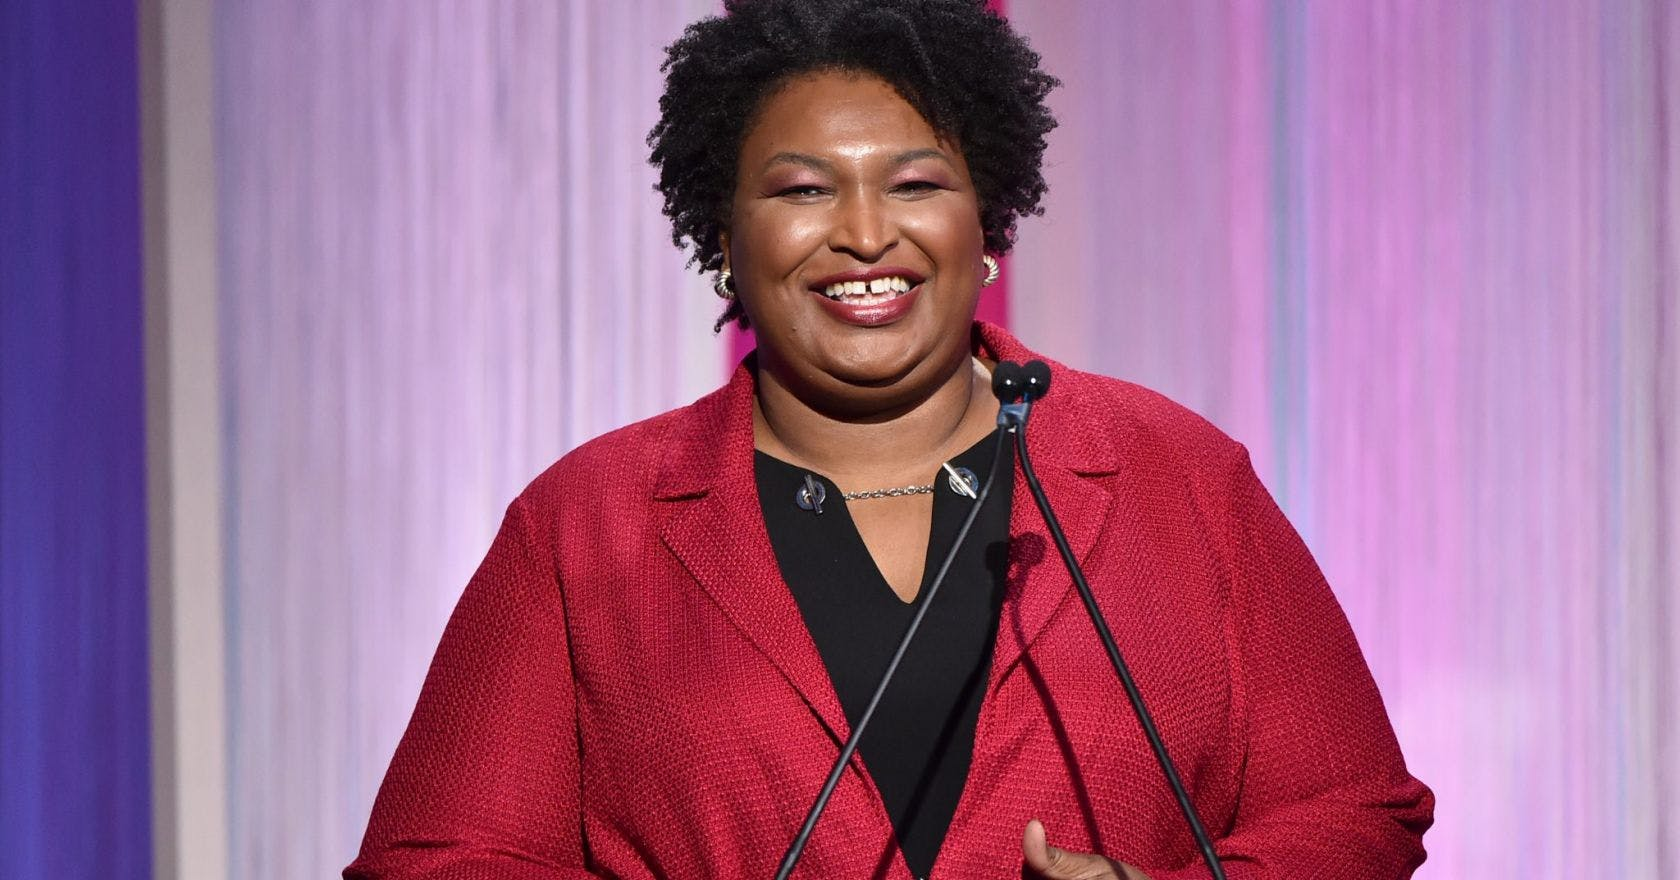 Yes, you're damn right Stacey Abrams wants to be vice president